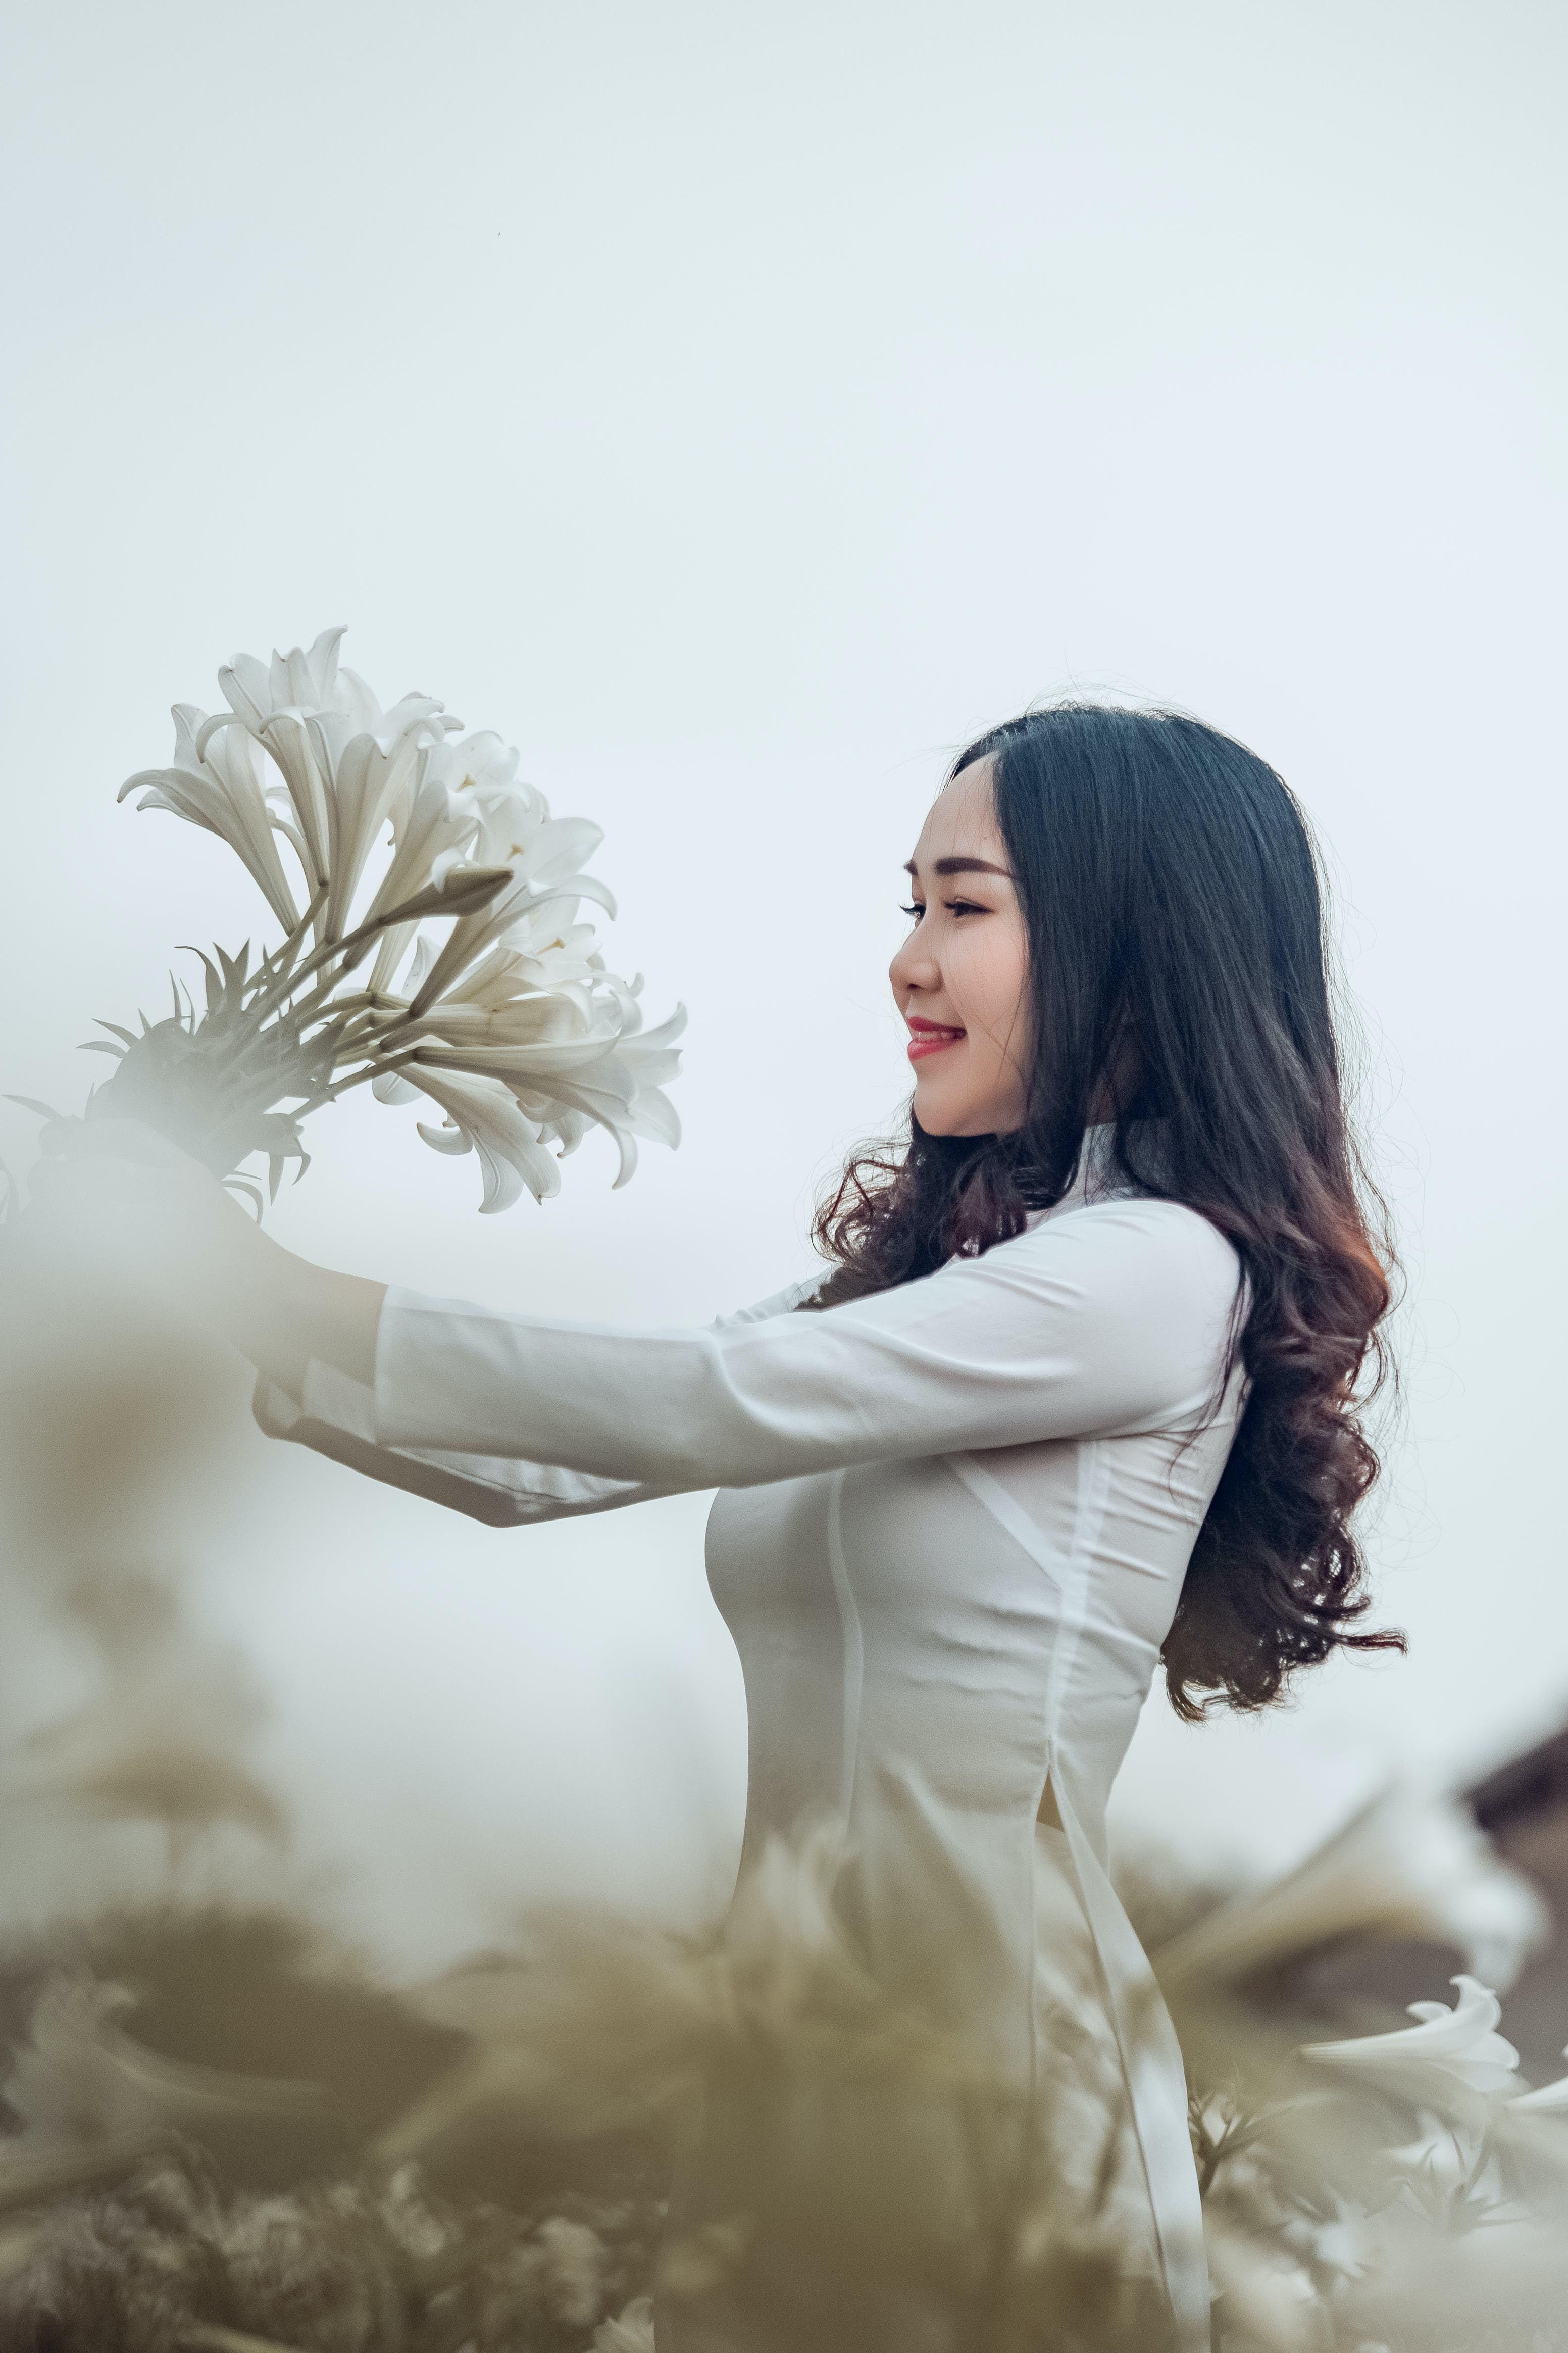 Woman Wearing White Shirt While Holding Flowers